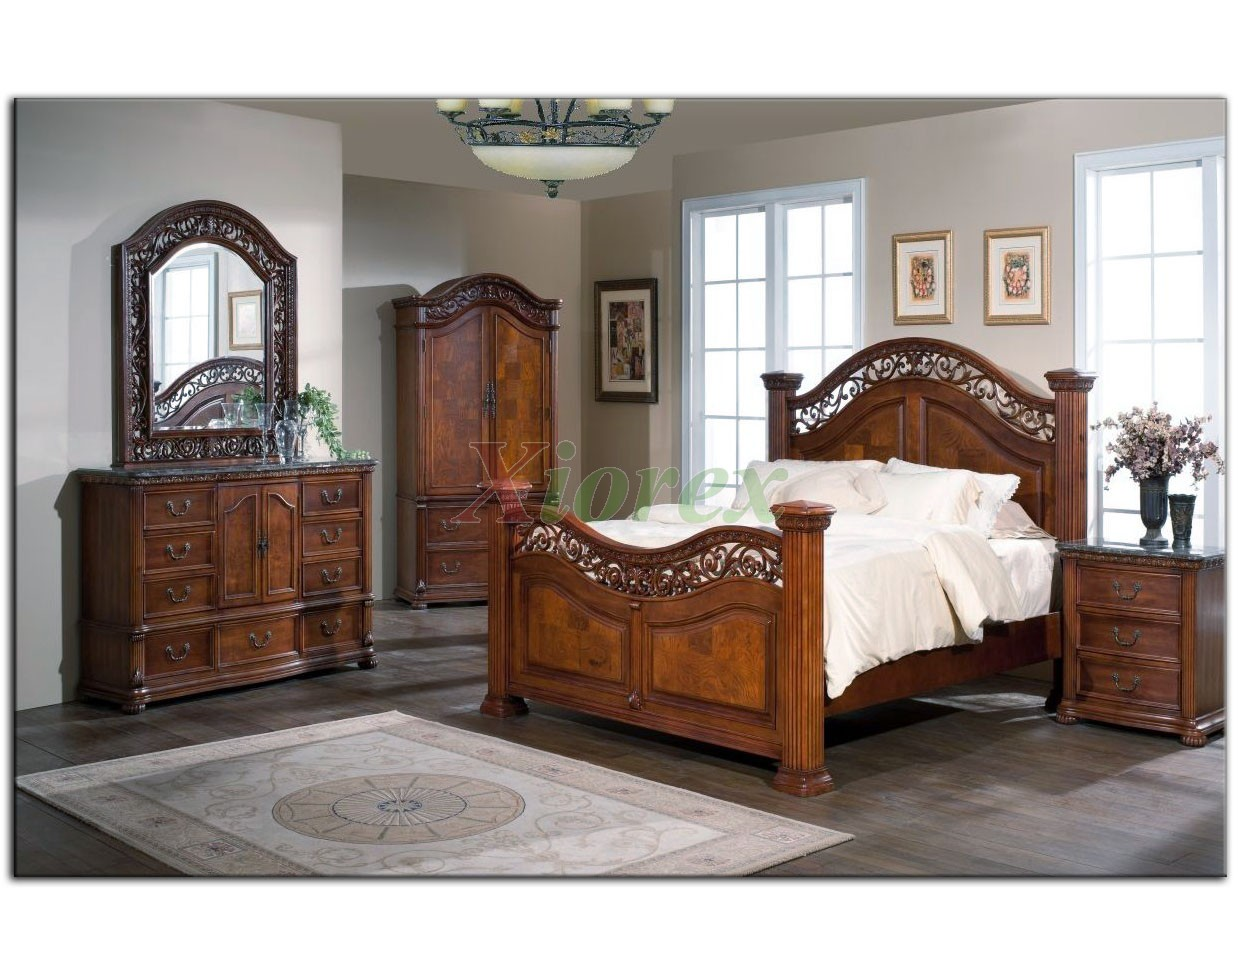 Poster bedroom furniture set 114 xiorex for Bedroom furniture